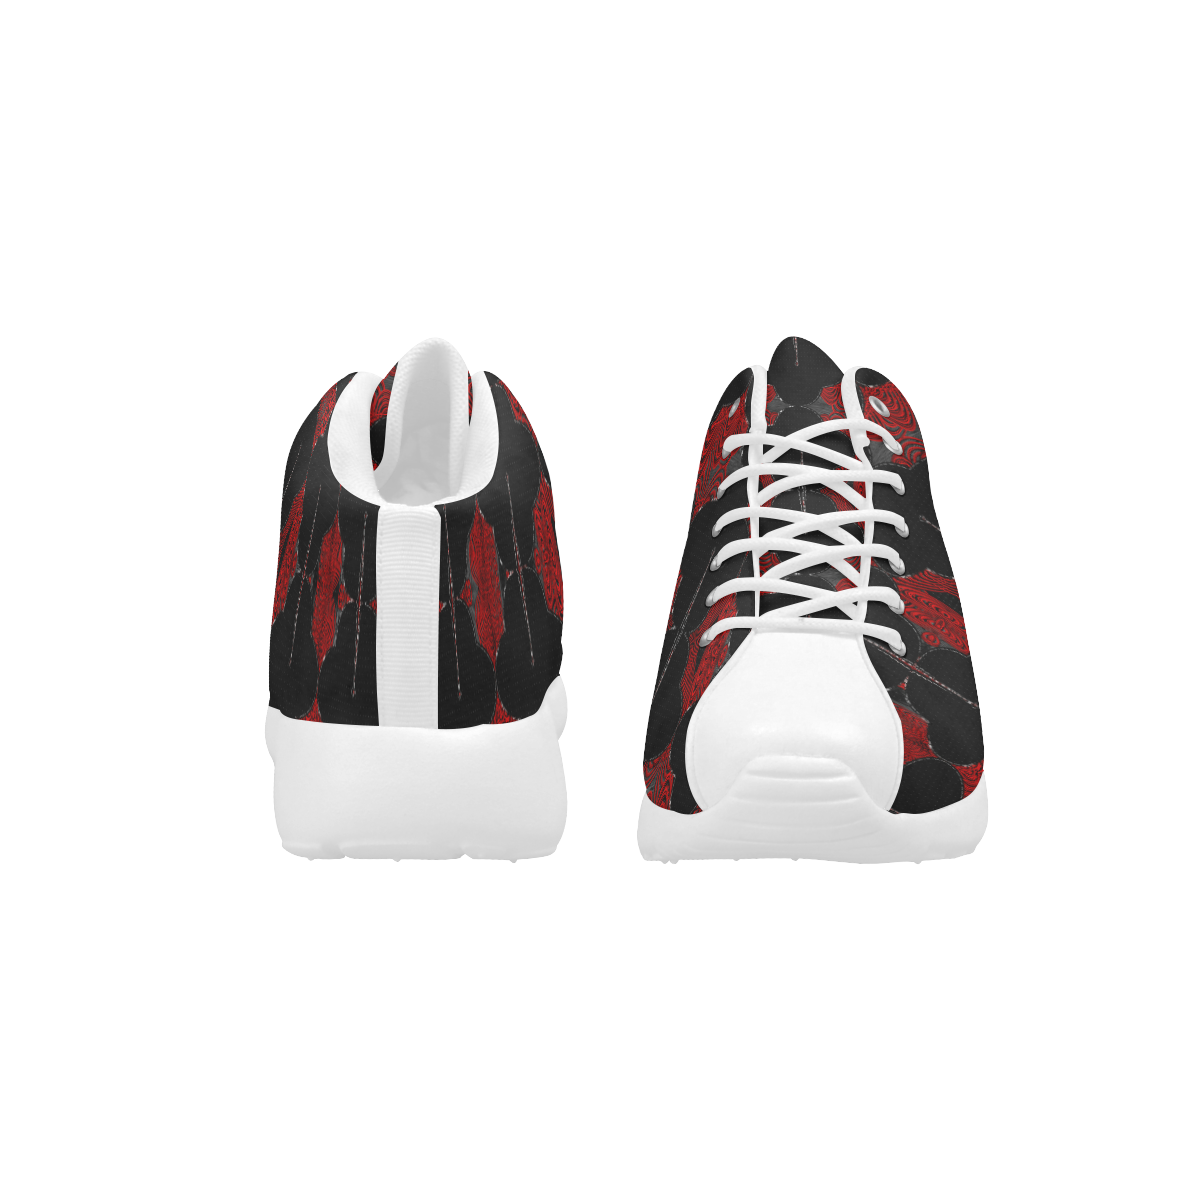 abstract_5500_2019_RBW_50h Women's Basketball Training Shoes (Model 47502)